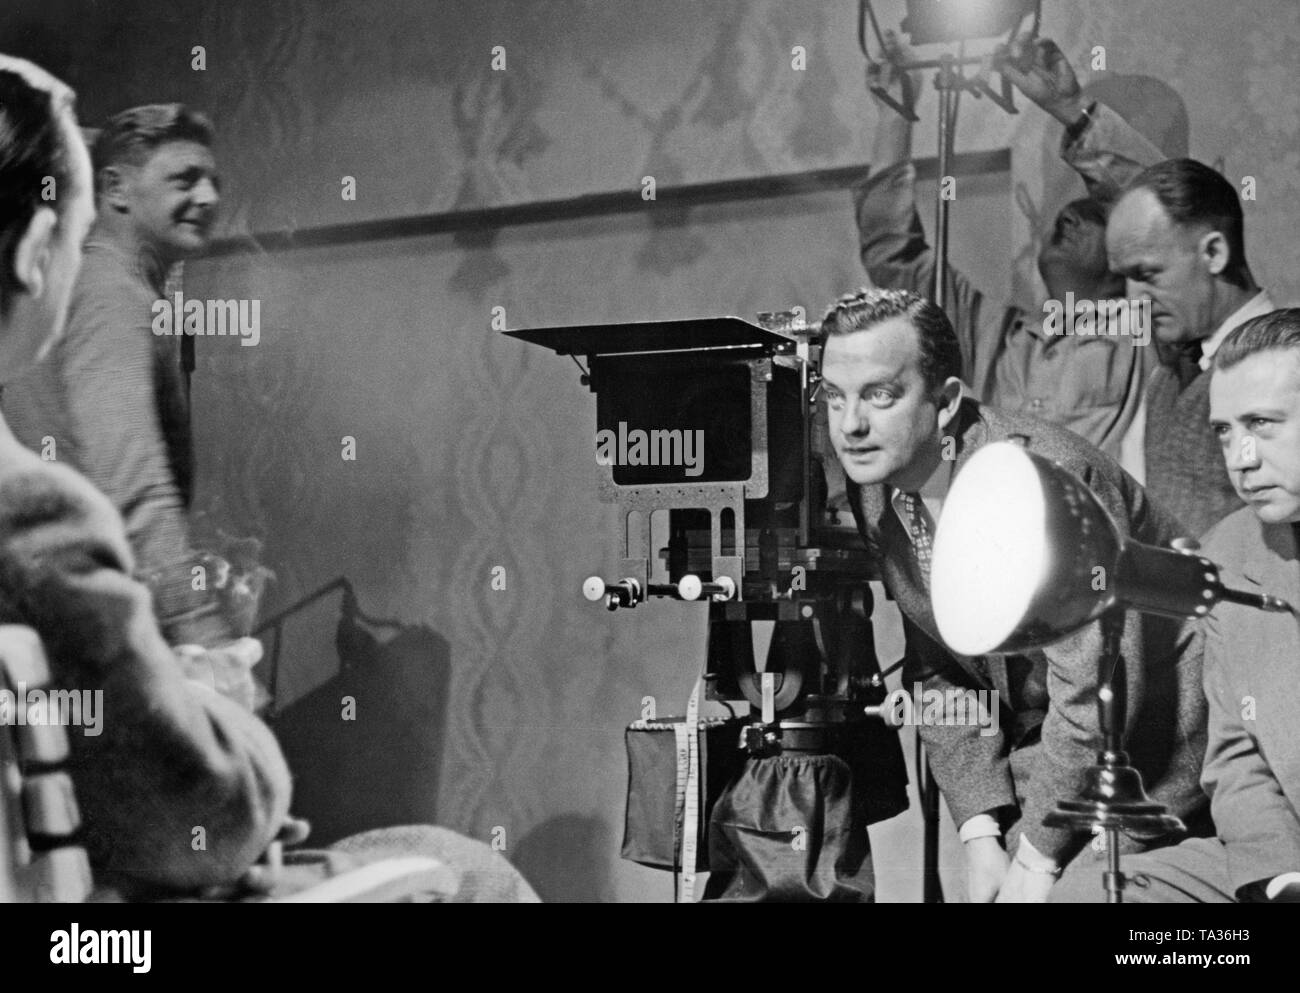 This photo shows cameraman Friedl Behn-Grund (next to the camera), who is looking at the face of actor Curt Goetz to find the right light for him. - Stock Image